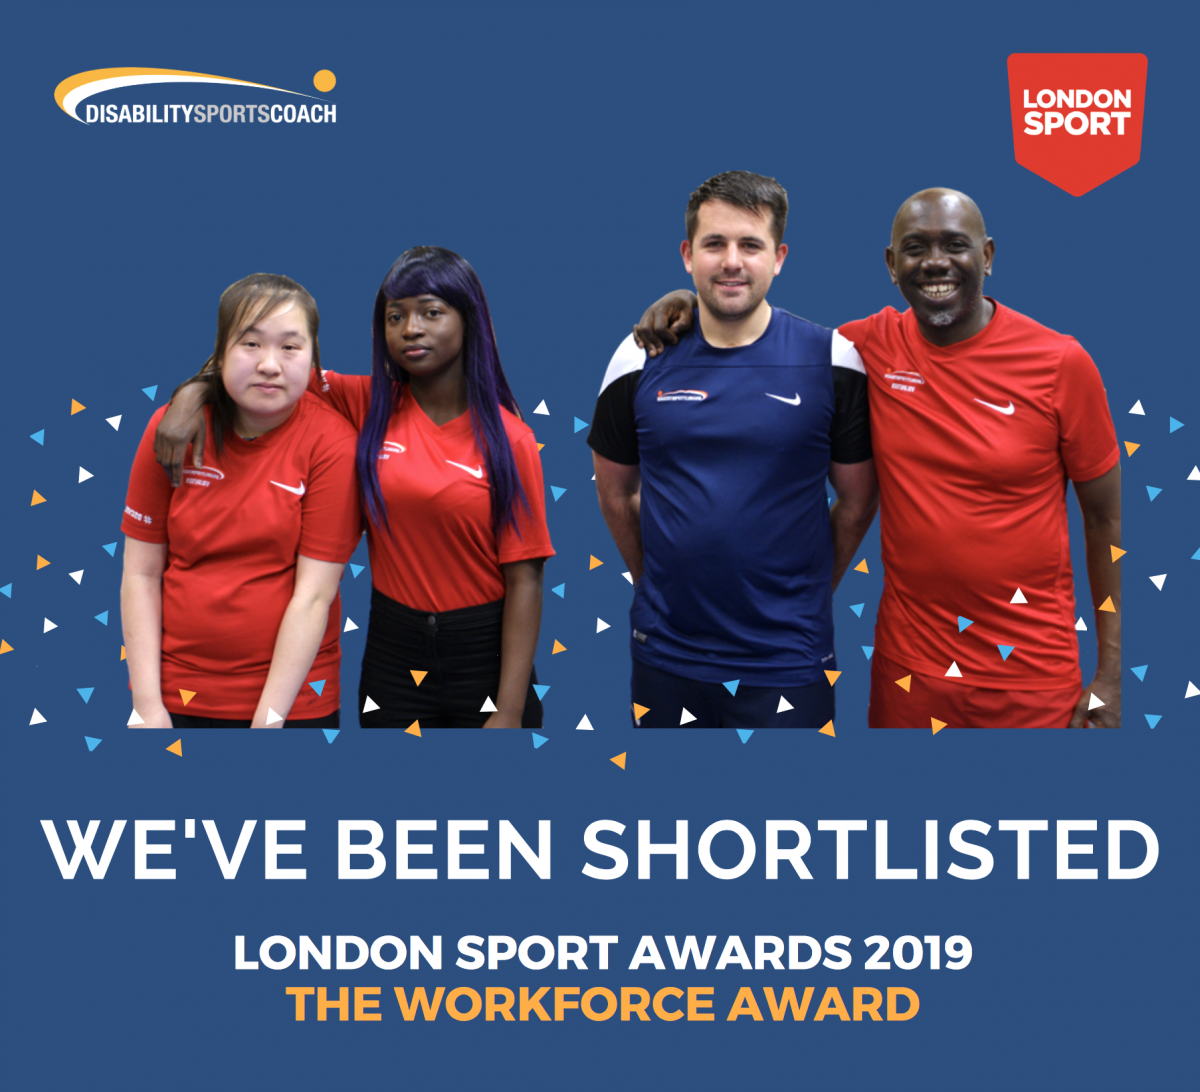 London Sport Awards 2019 - Disability Sports Coach - The Workforce Awards